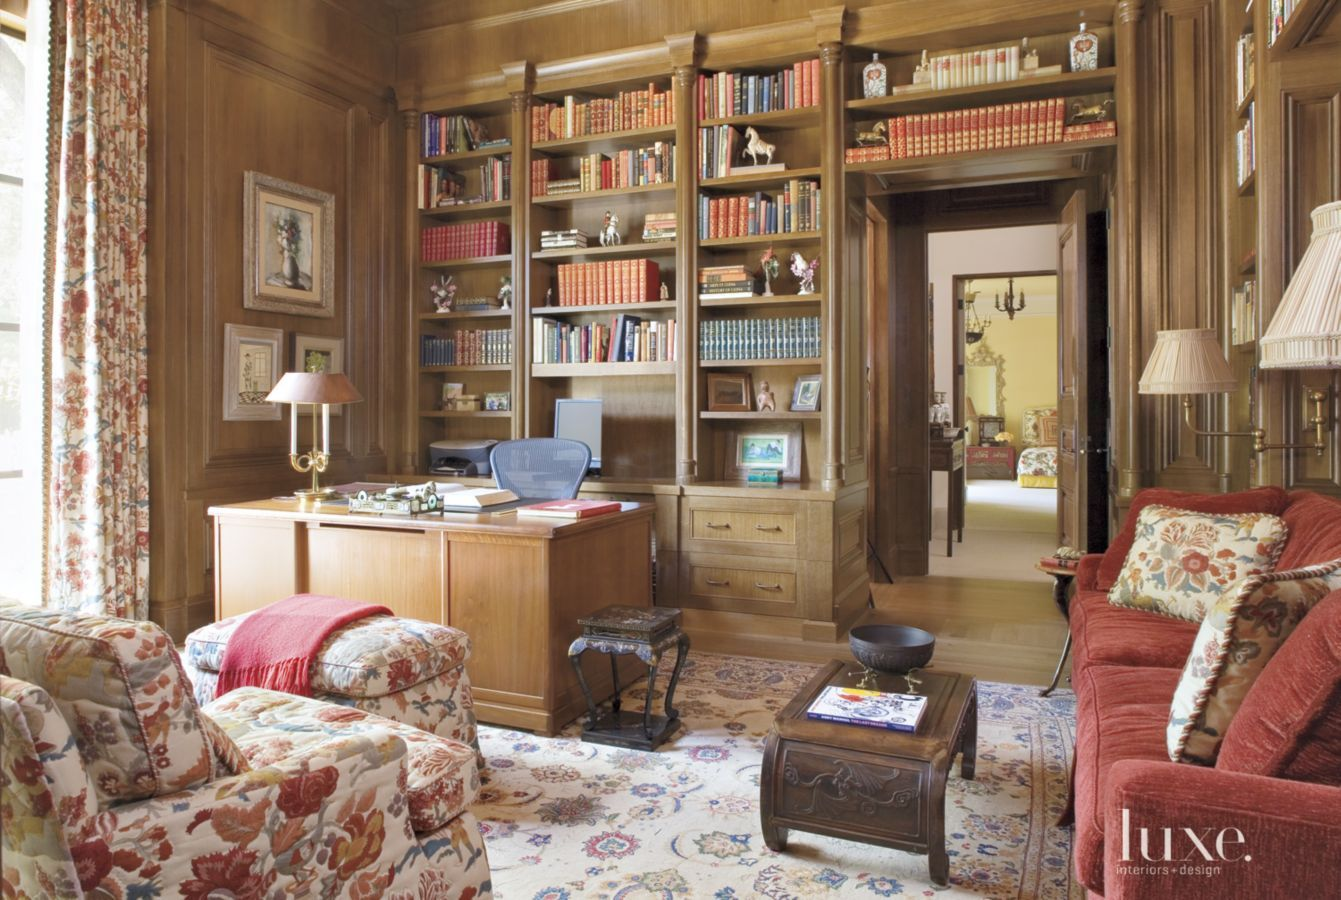 Traditional chinese house interior library  the antique chinese coromandel screen behind the sofa in